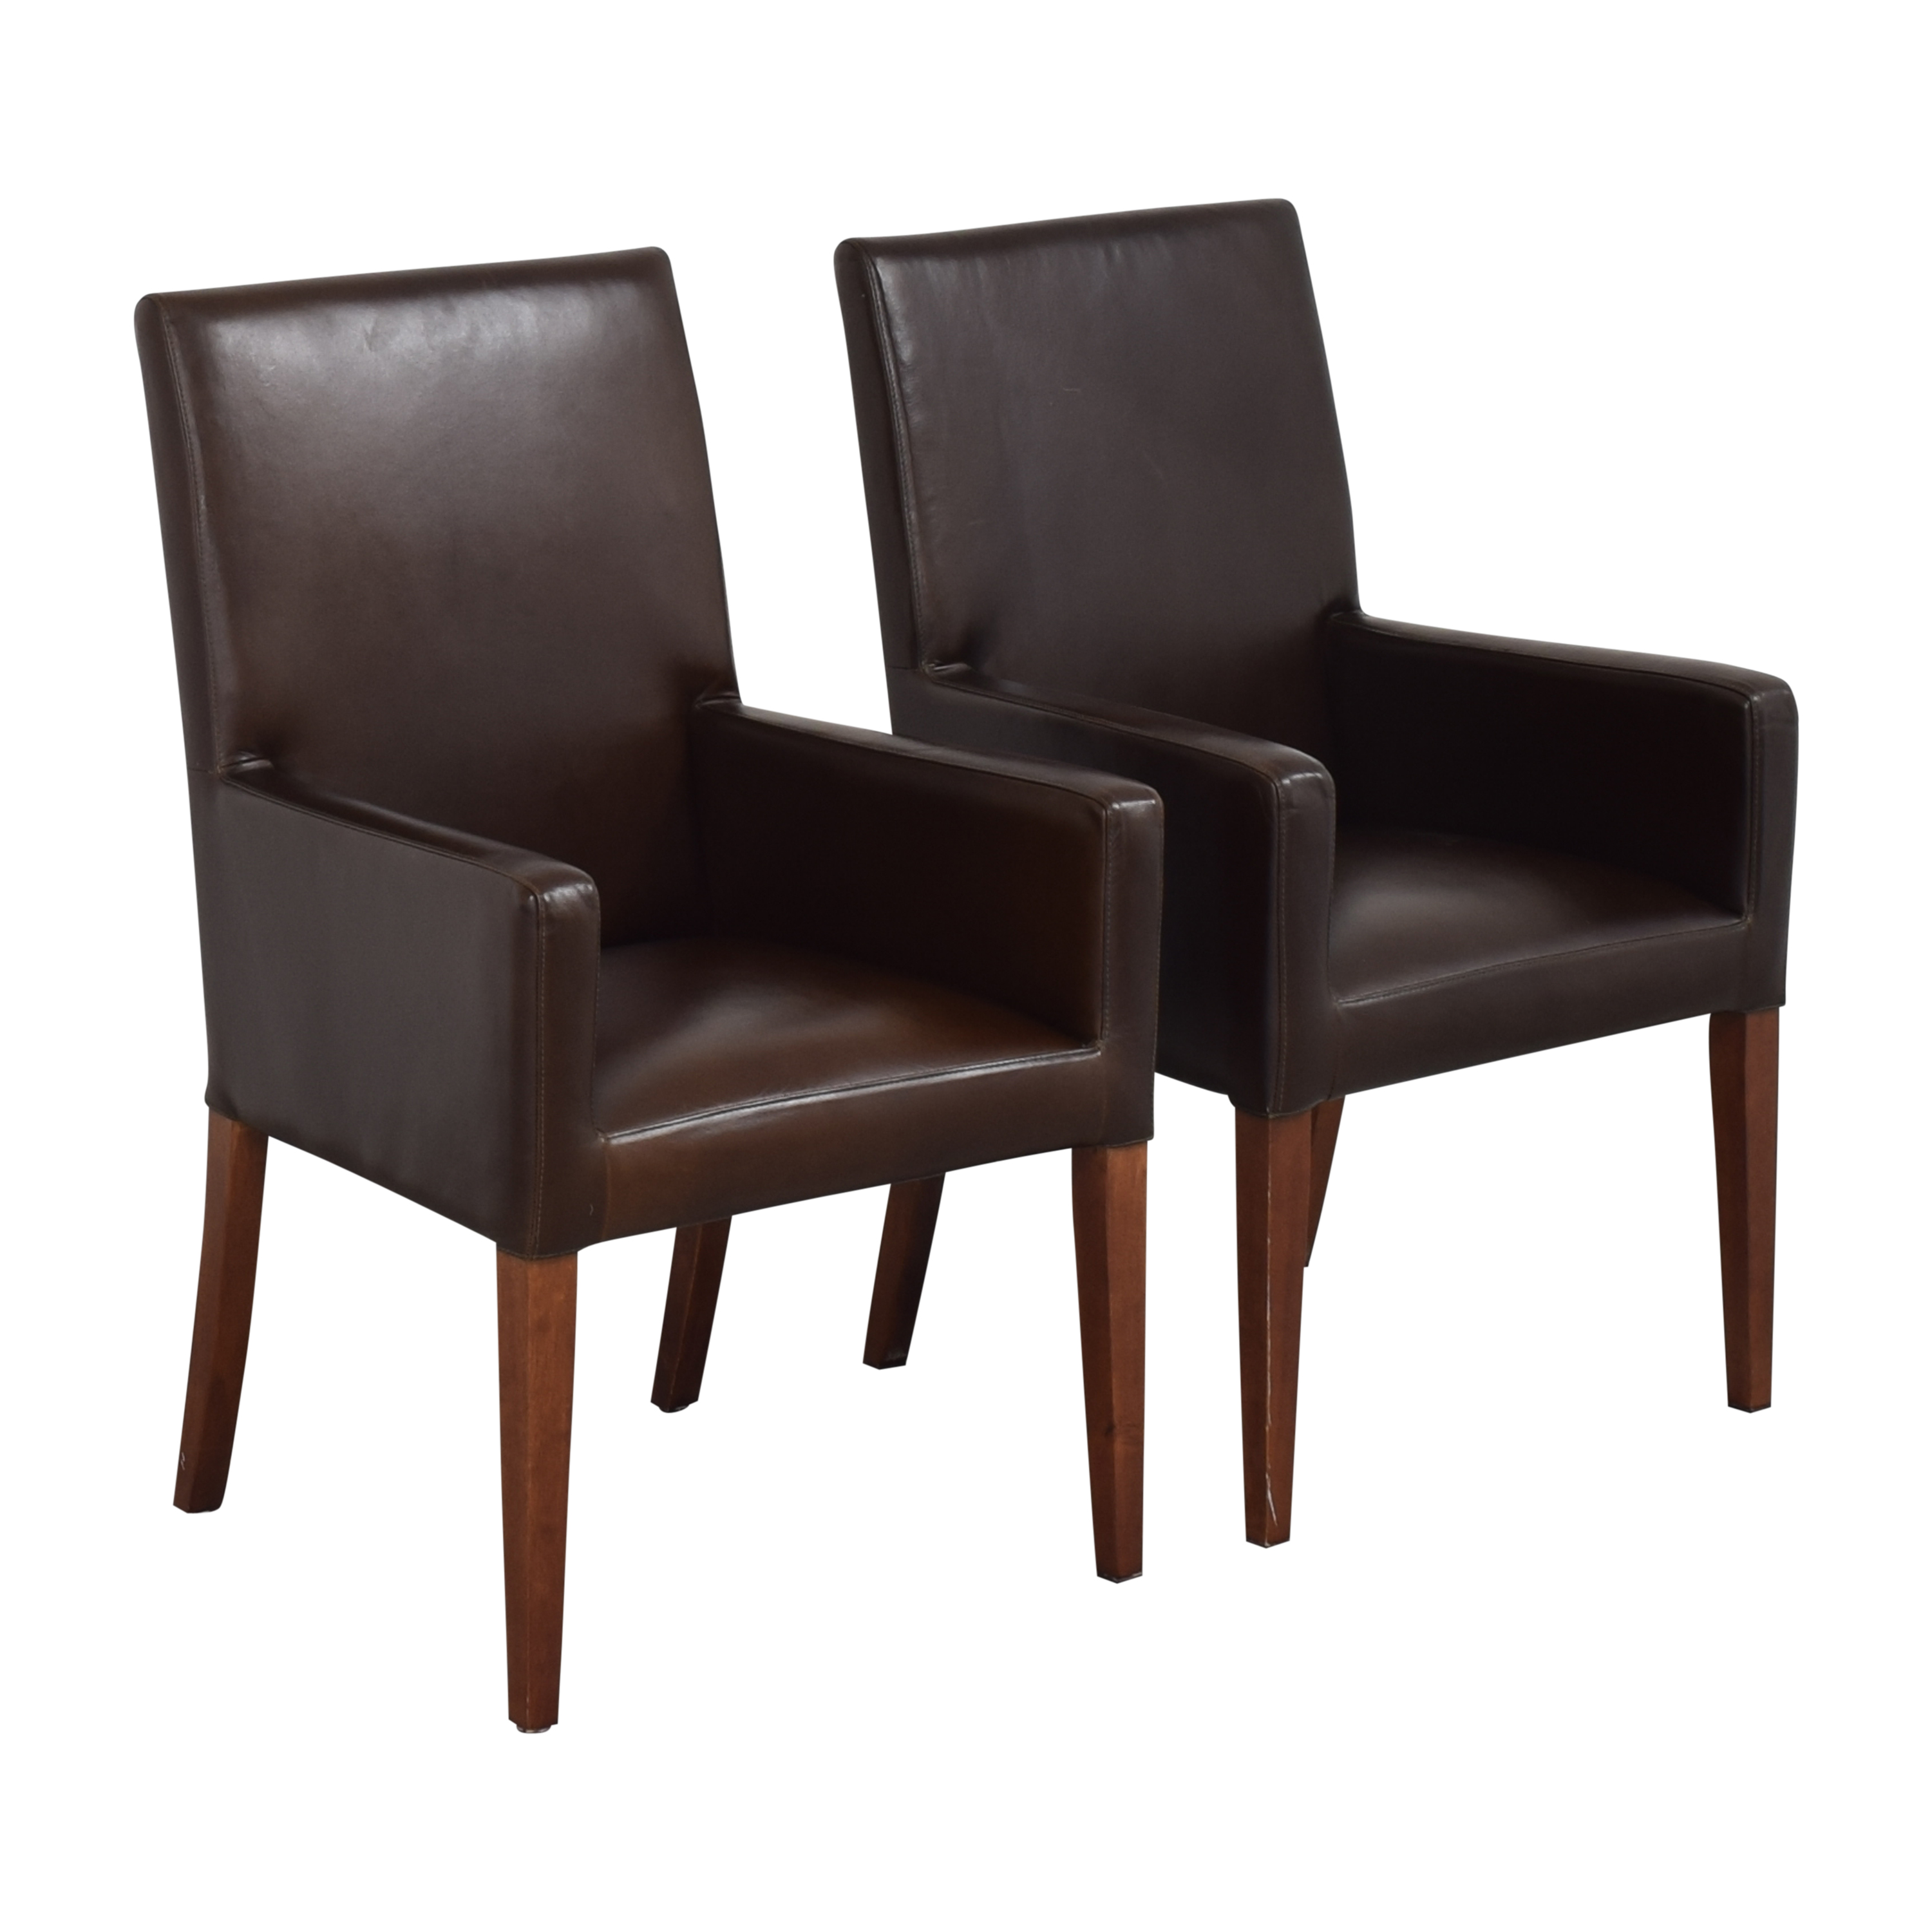 Pottery Barn Pottery Barn Grayson Dining Arm Chairs ct